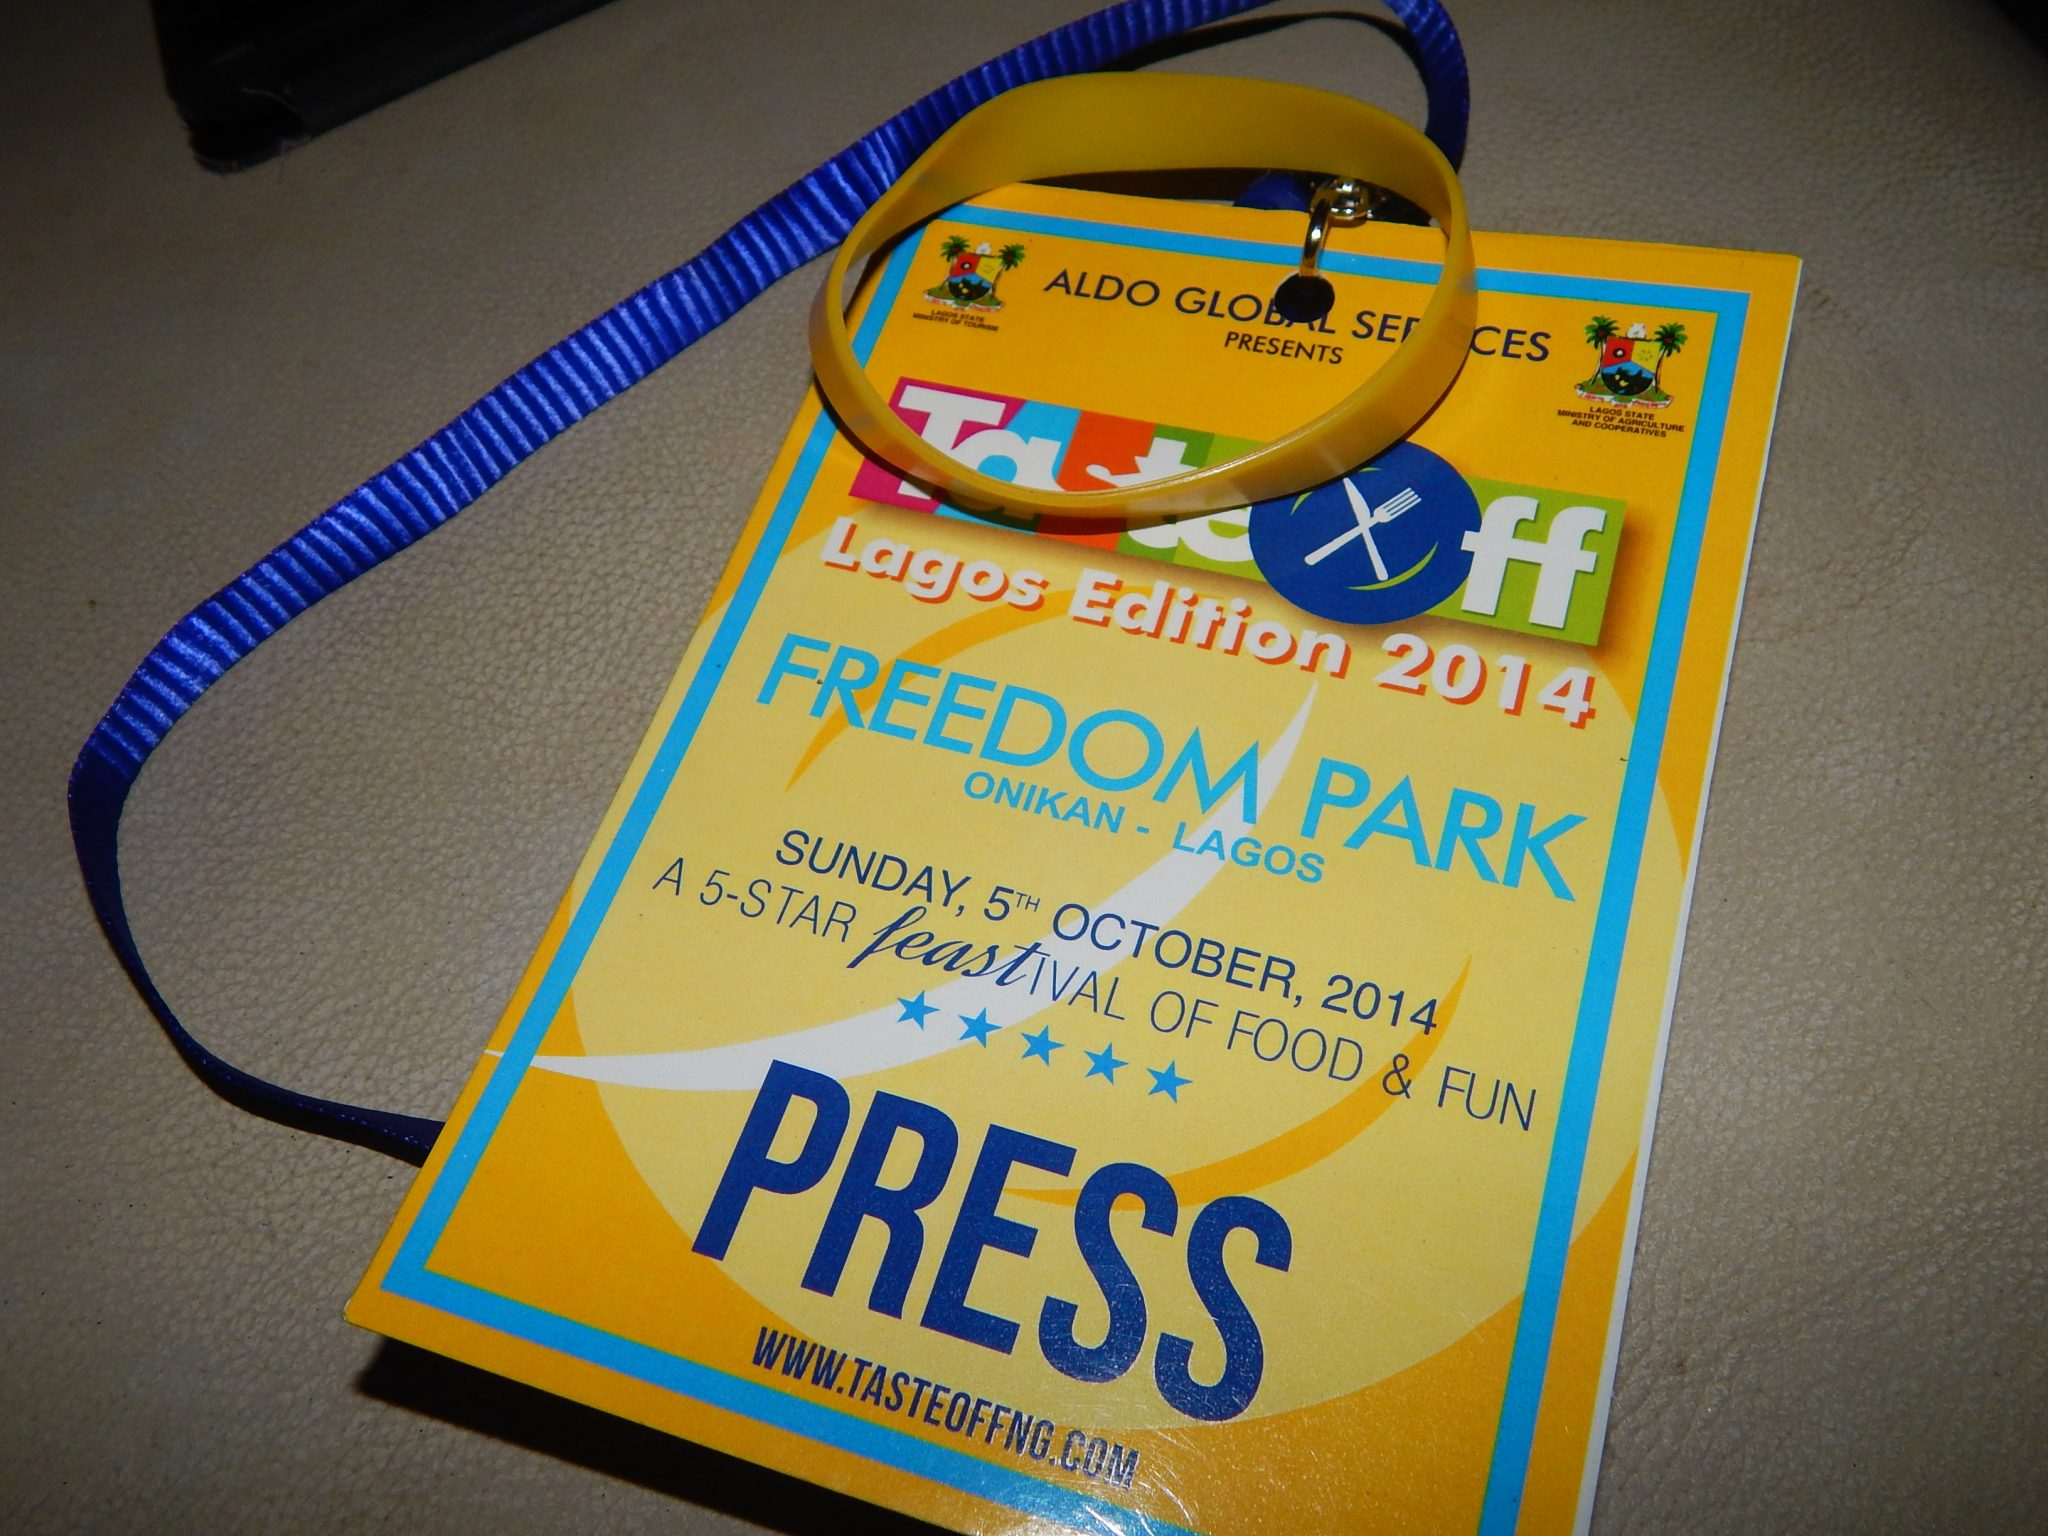 Did I forget to mention I got a press tag along with my VIP band?  :-)